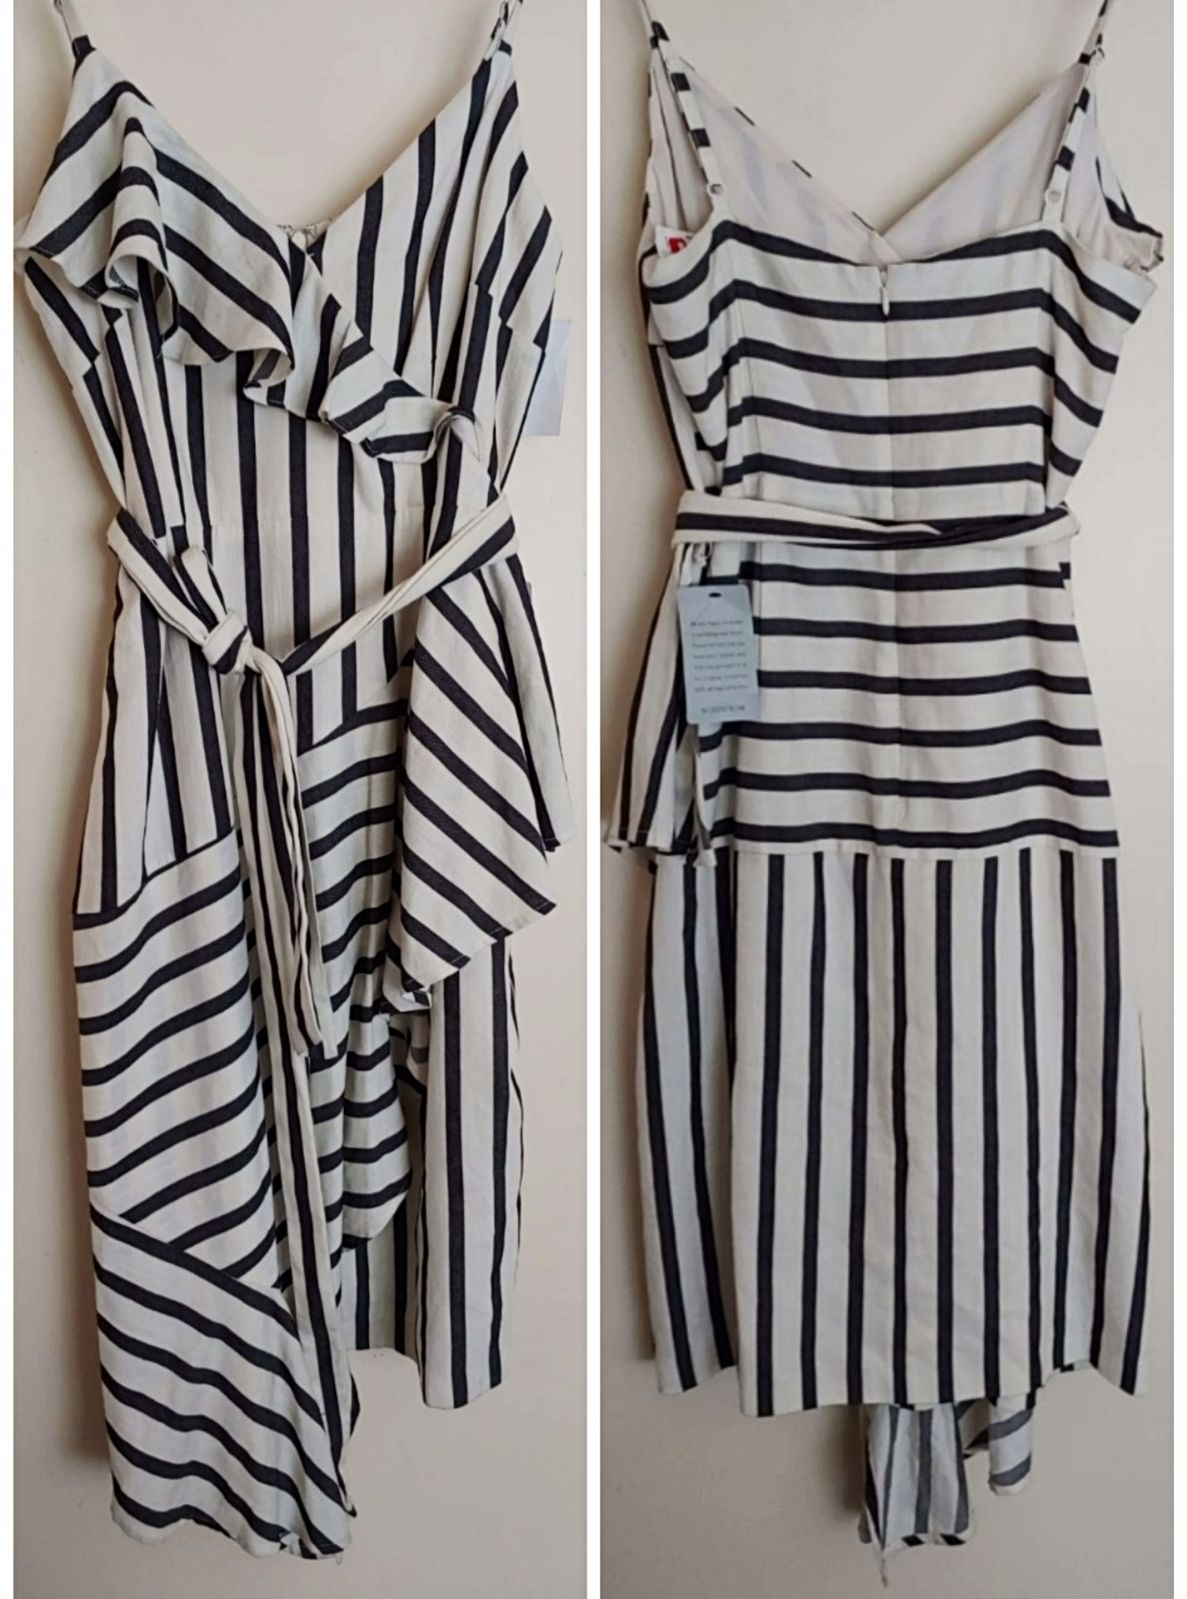 New Chelsea Assymetrical striped dress